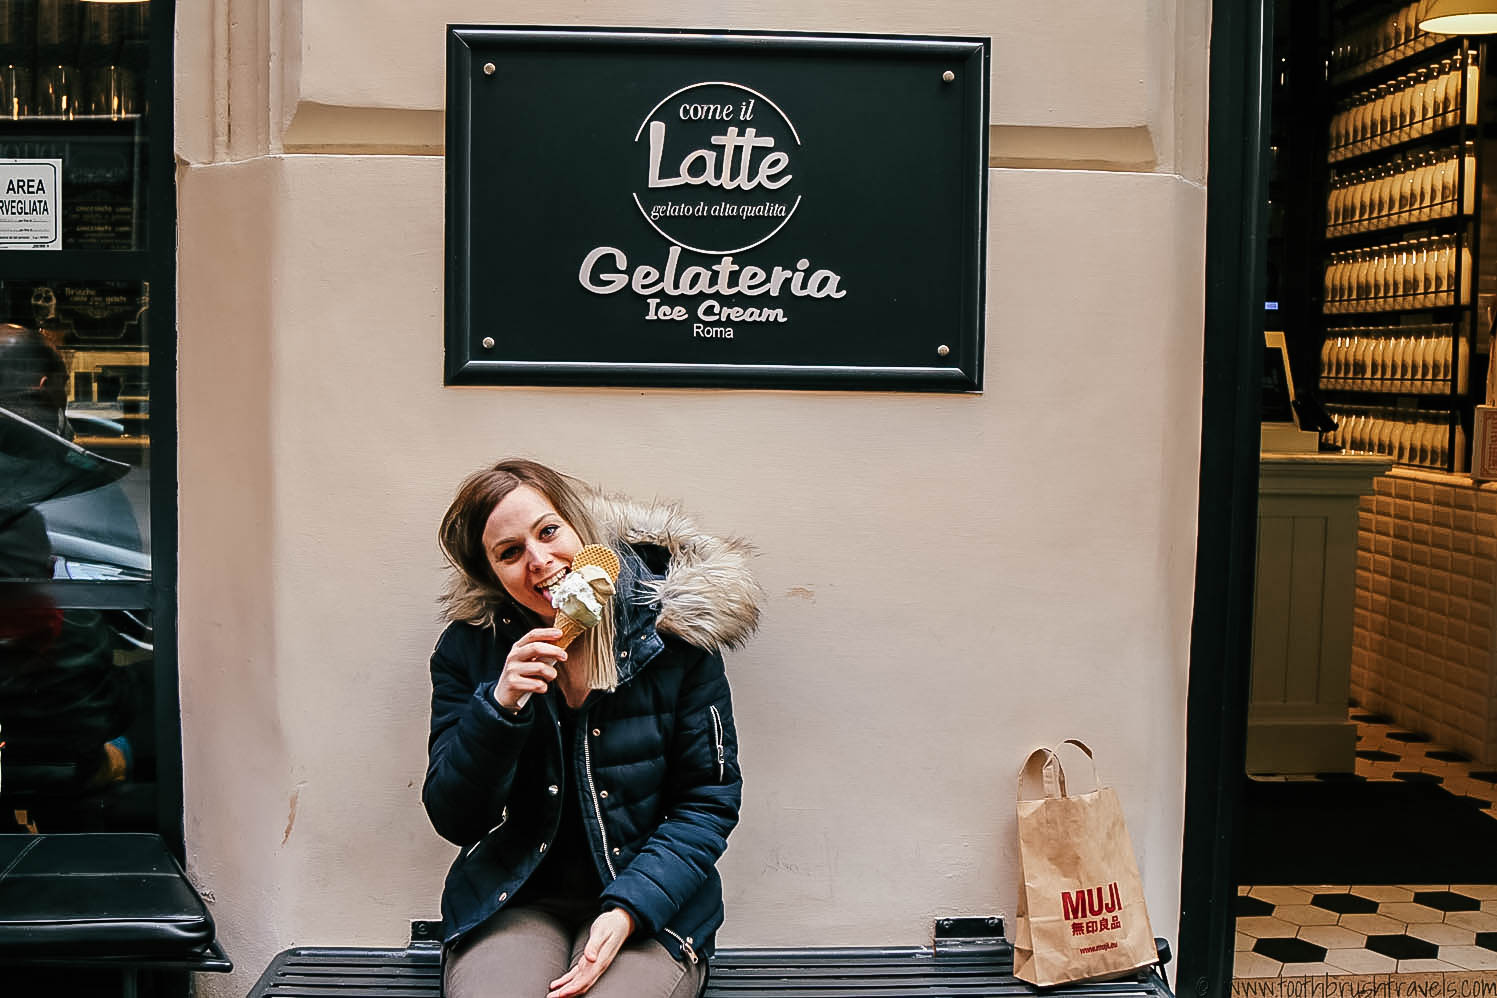 Come il Latte shop front